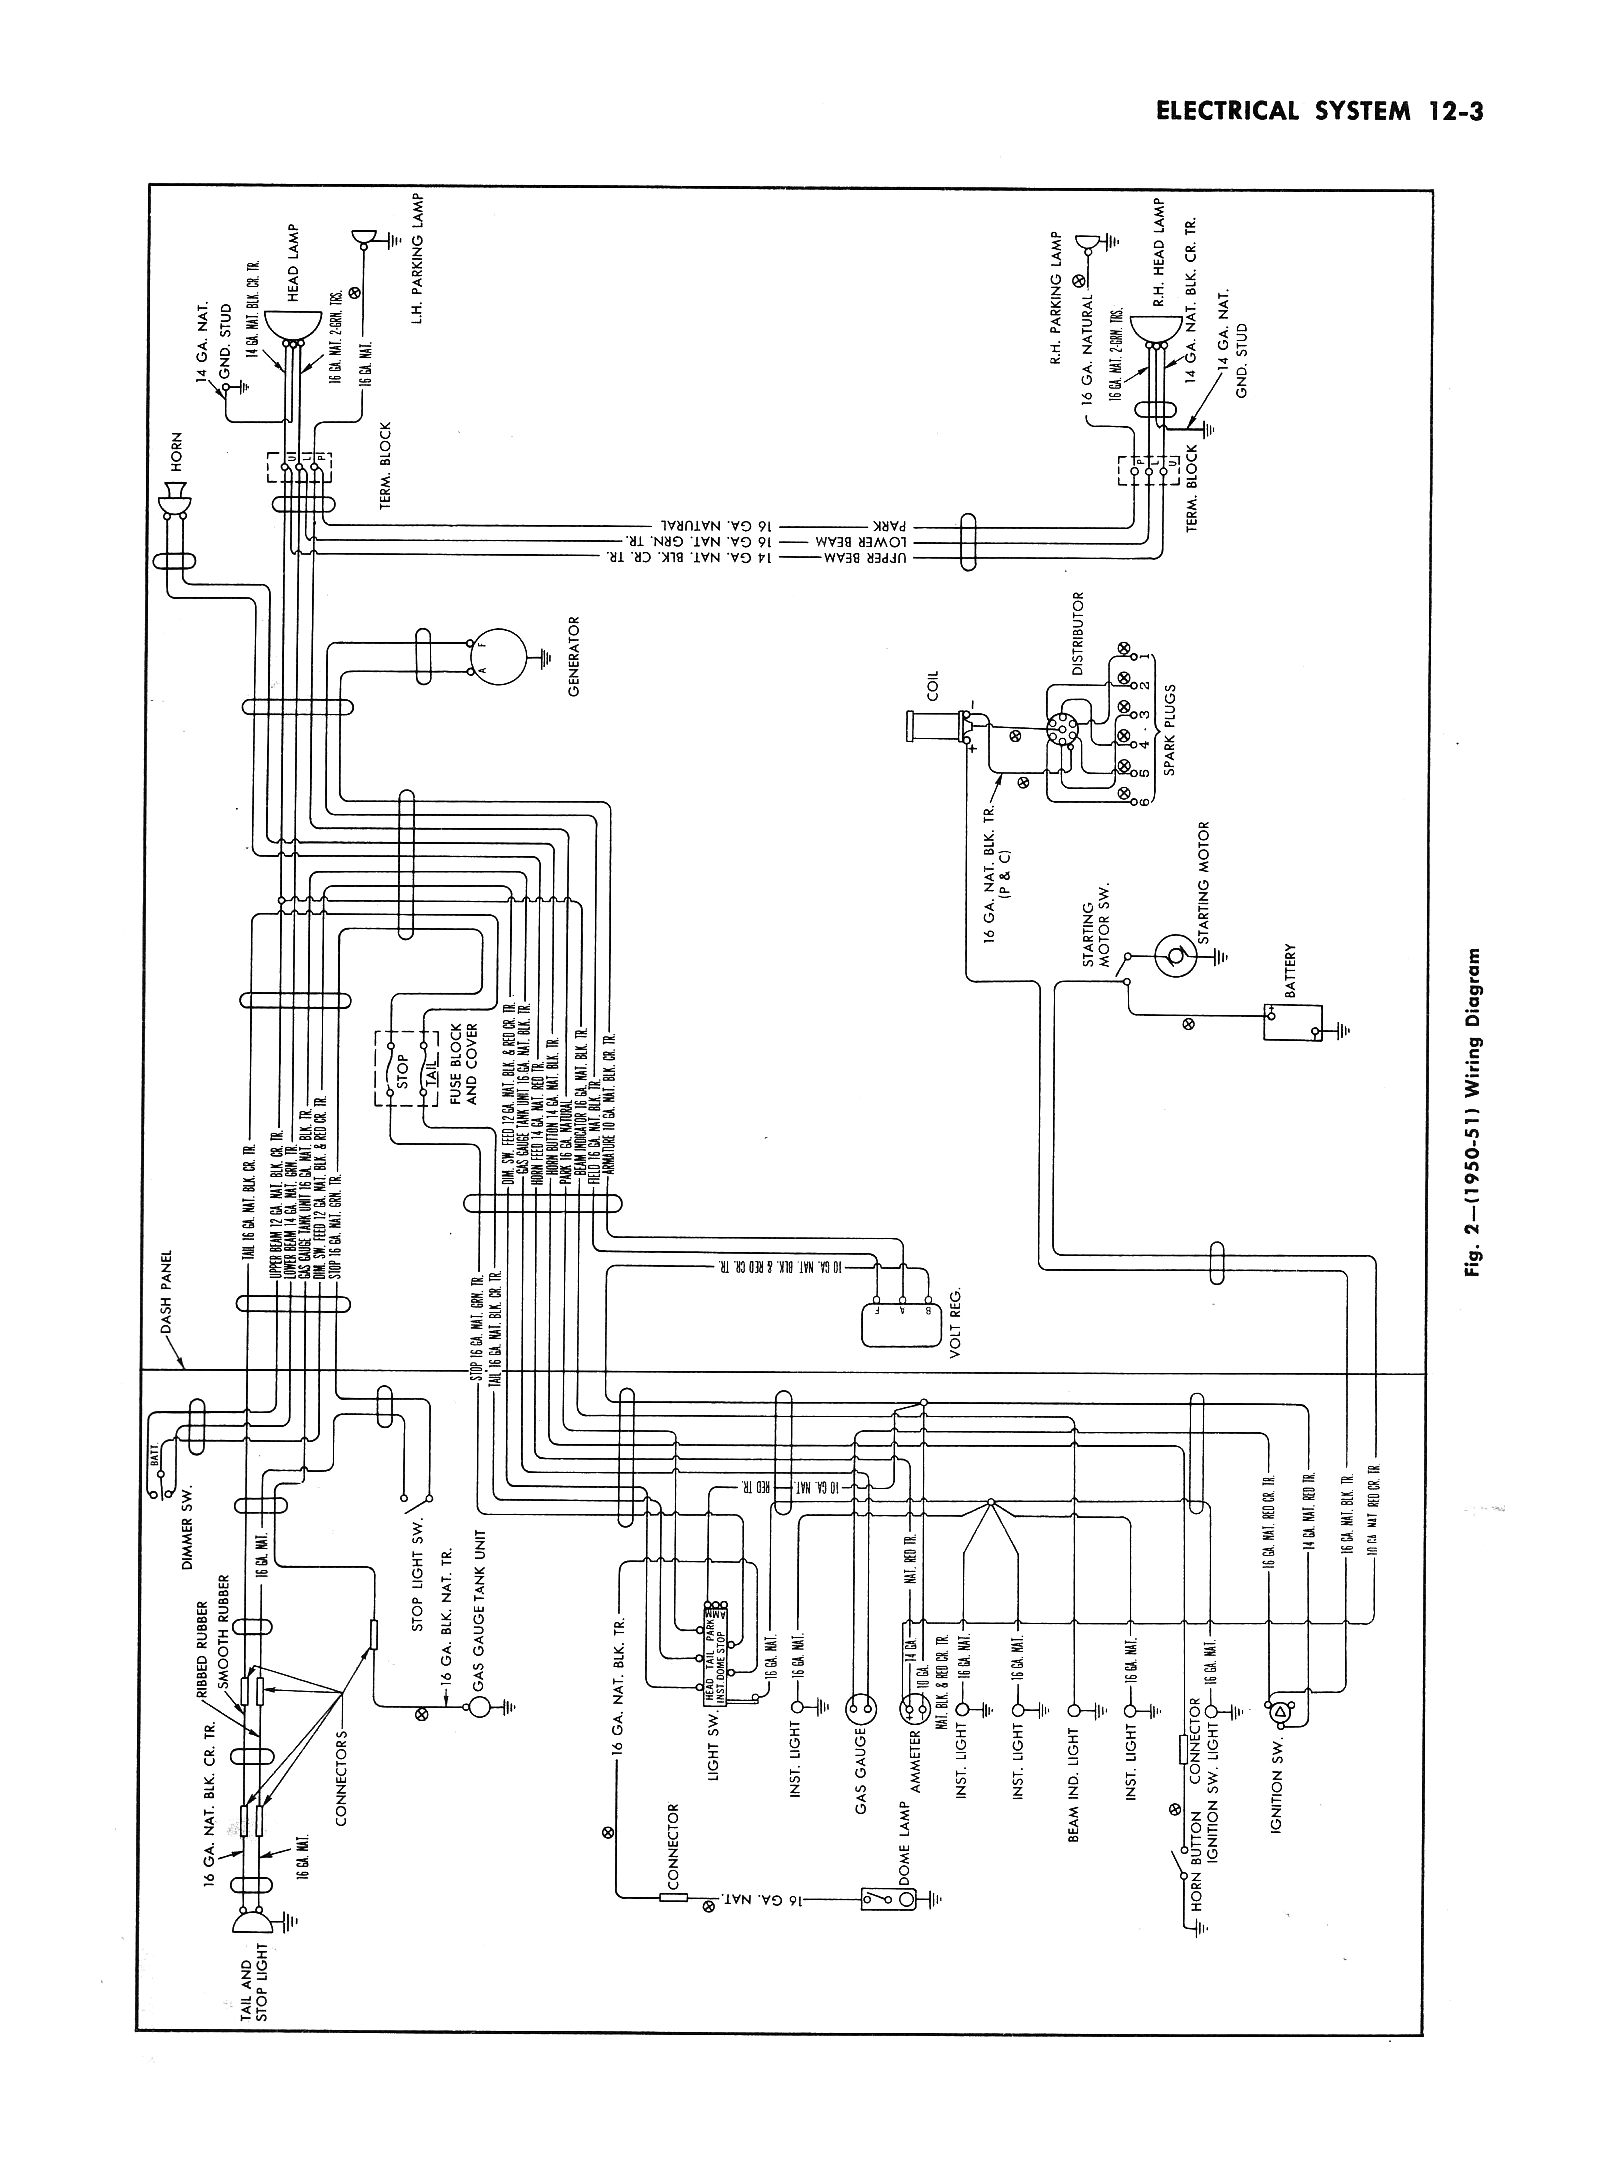 1949 Chevy Pickup Wiring Diagram Real Wire Cub Cadet 13aq11cp712 Diagrams Rh Oldcarmanualproject Com 1991 Truck 49